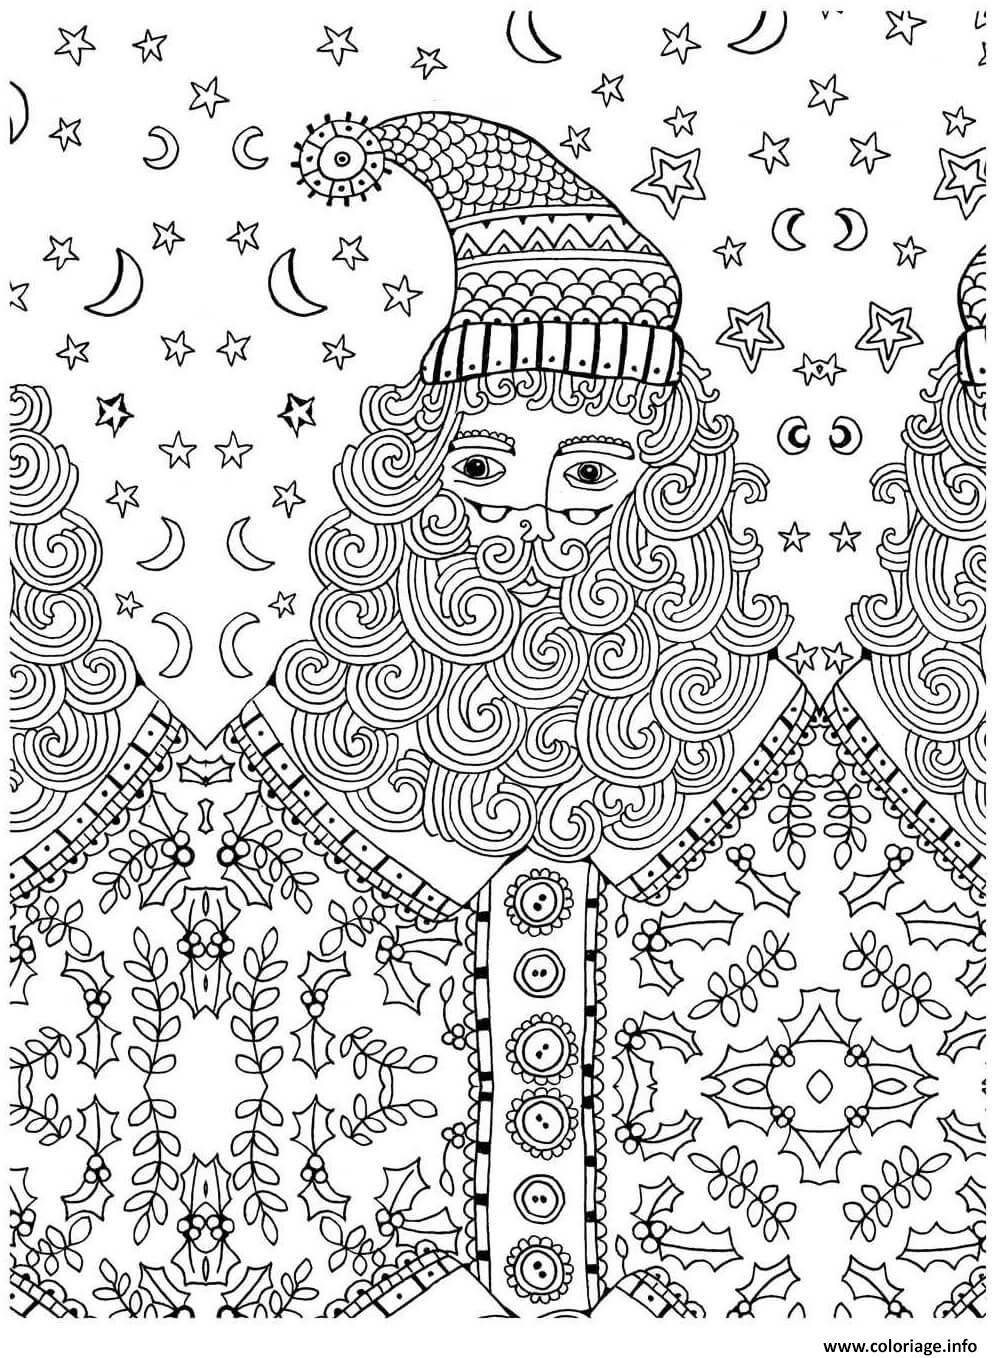 Coloriage pere noel adulte anti stress - Anti coloriage ...